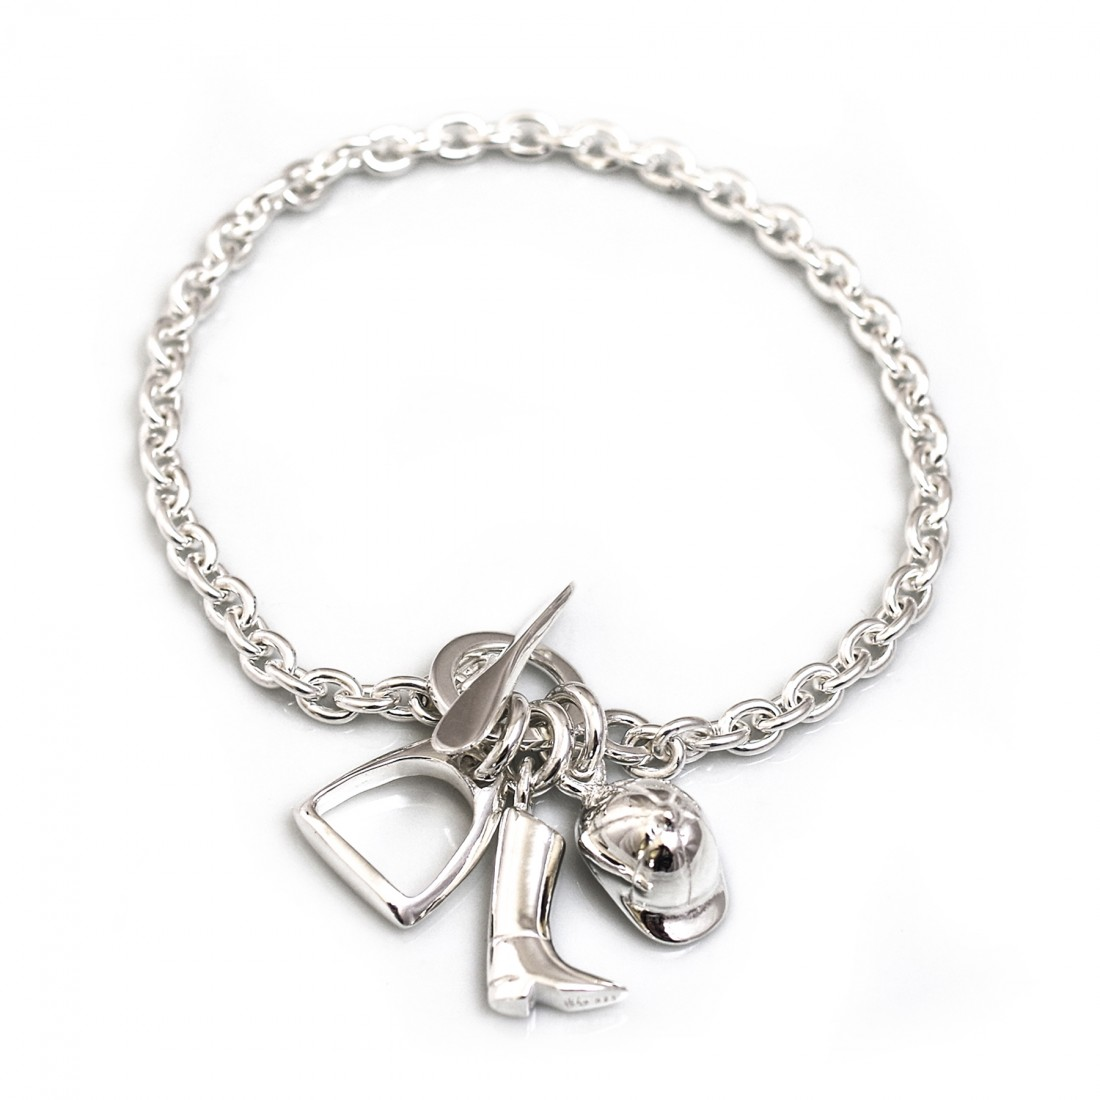 Sterling Silver Fob Bracelet with Equestrian Charms